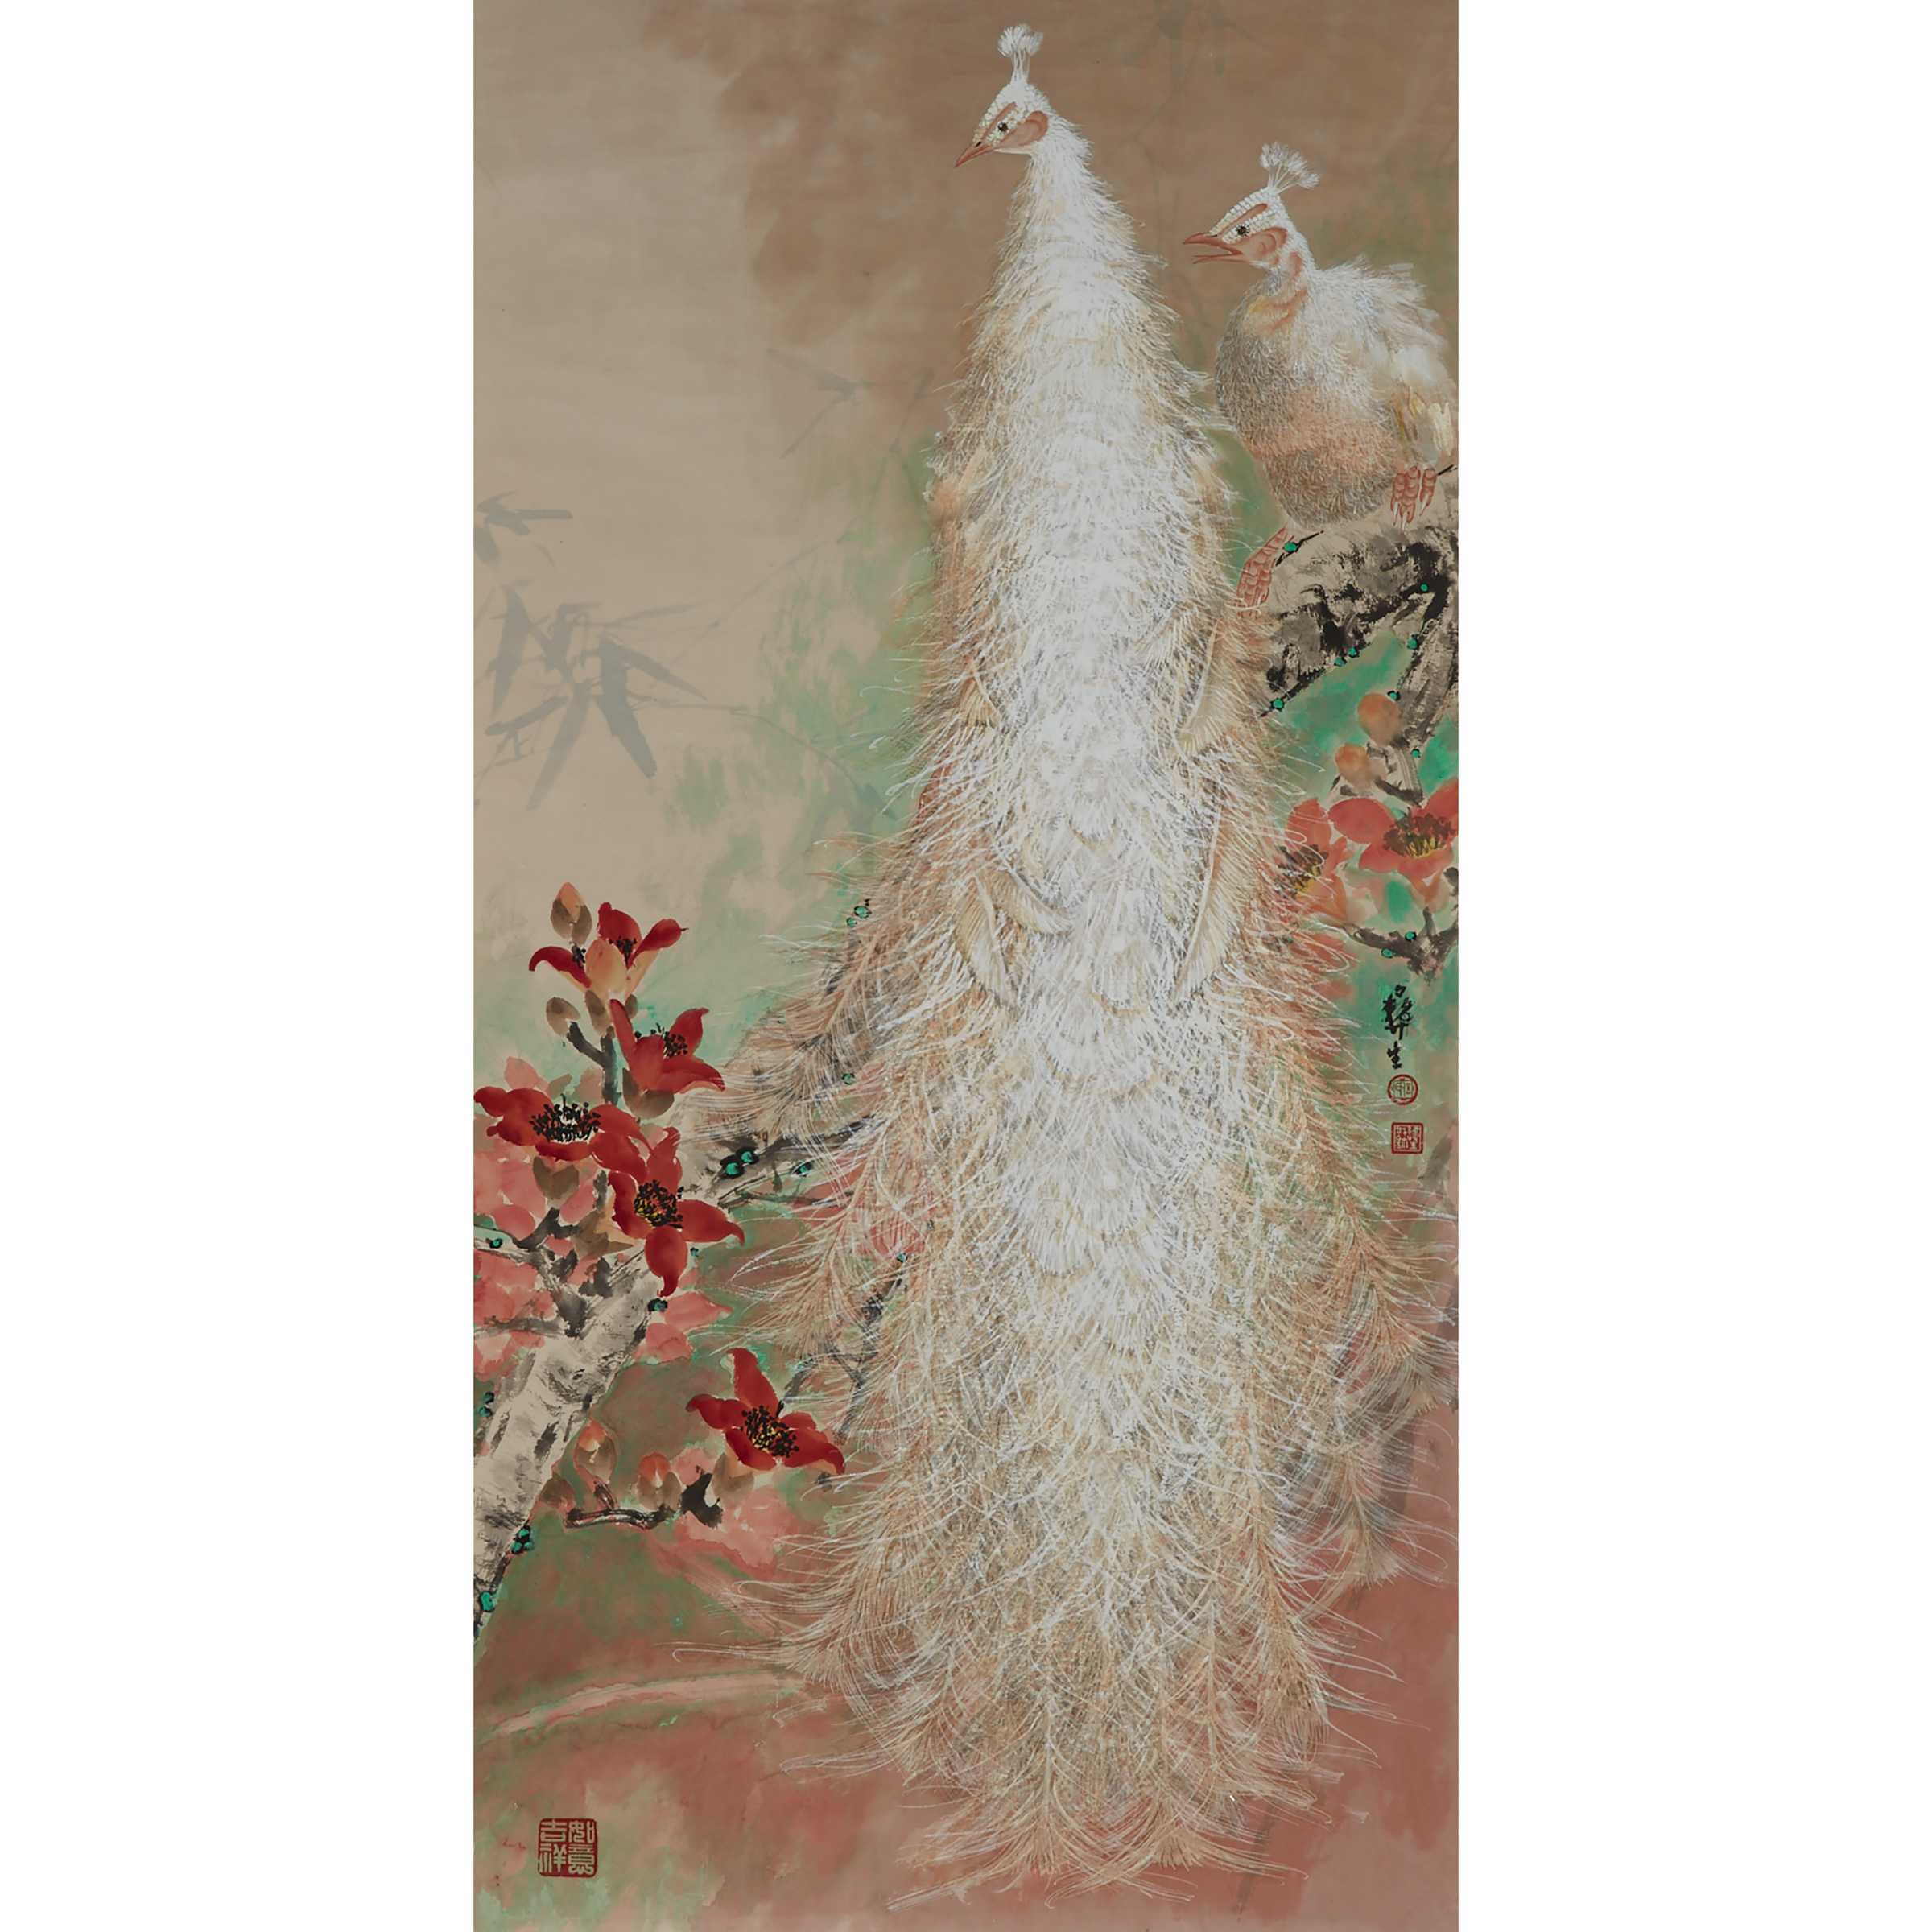 Wu Yisheng 伍彝生 (1929-2009), White Peacock Pair